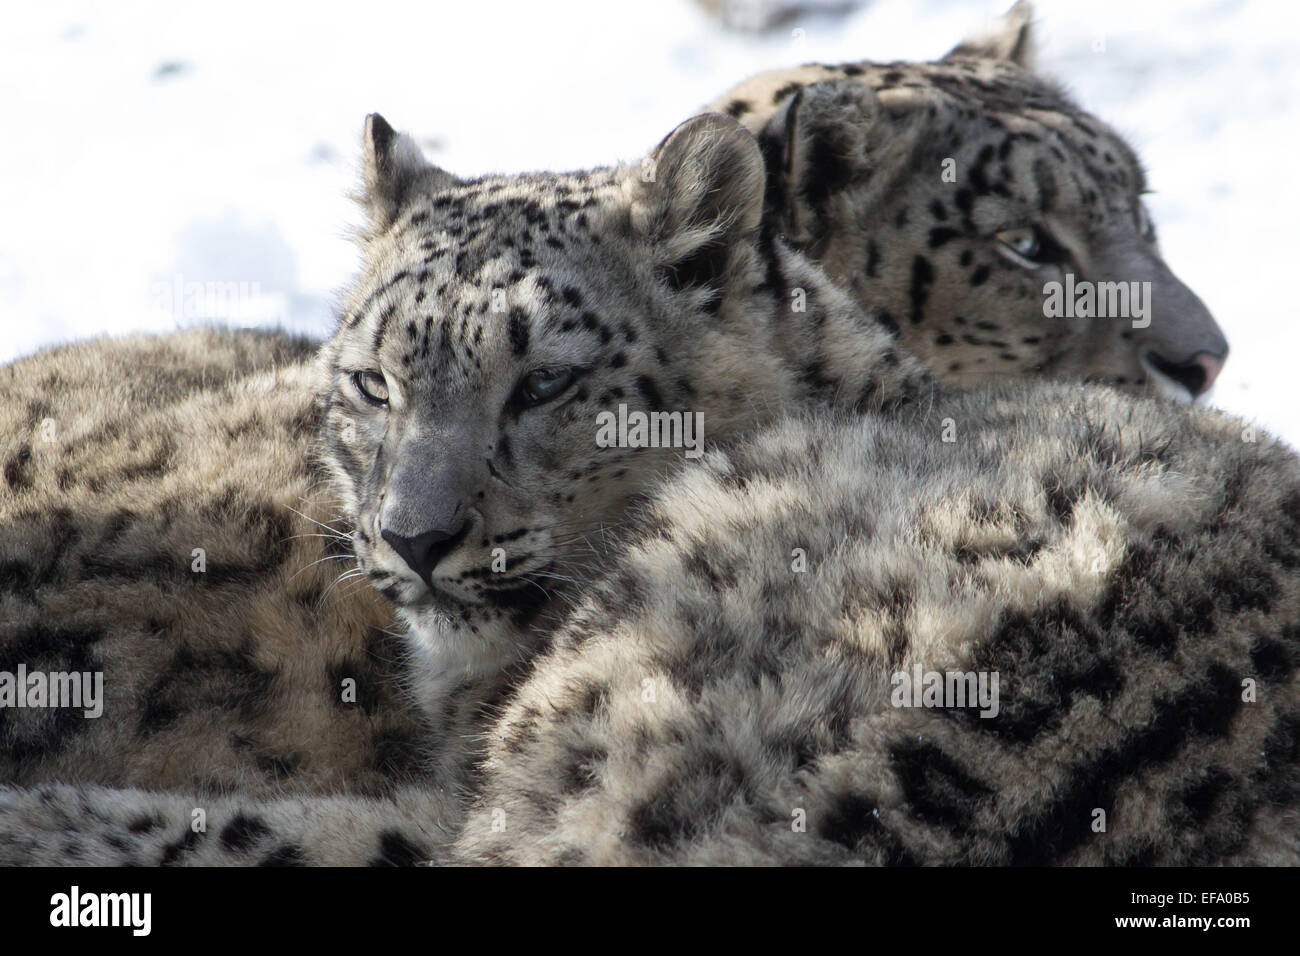 A pair of young leopard cubs look attentively in opposite directions as if in search of something.. - Stock Image